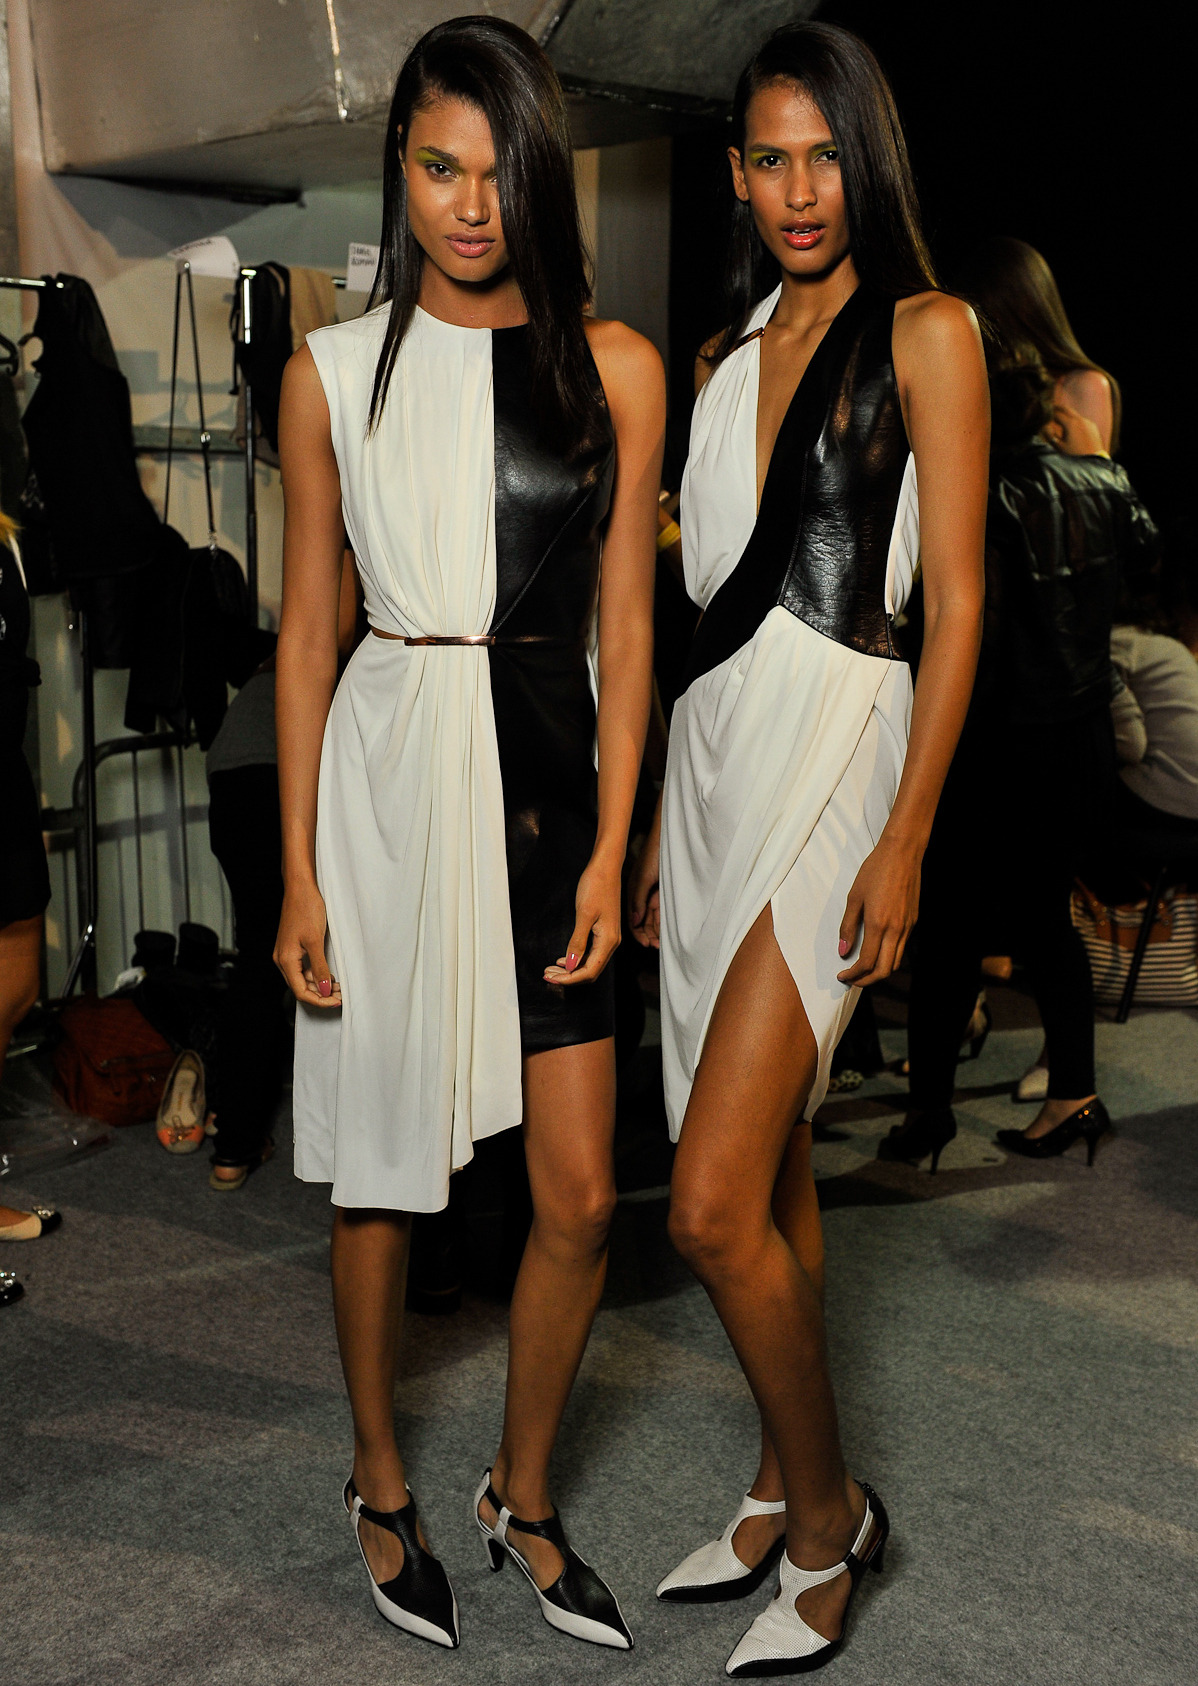 Daniela & Thanya backstage for Iodice S/S 2014